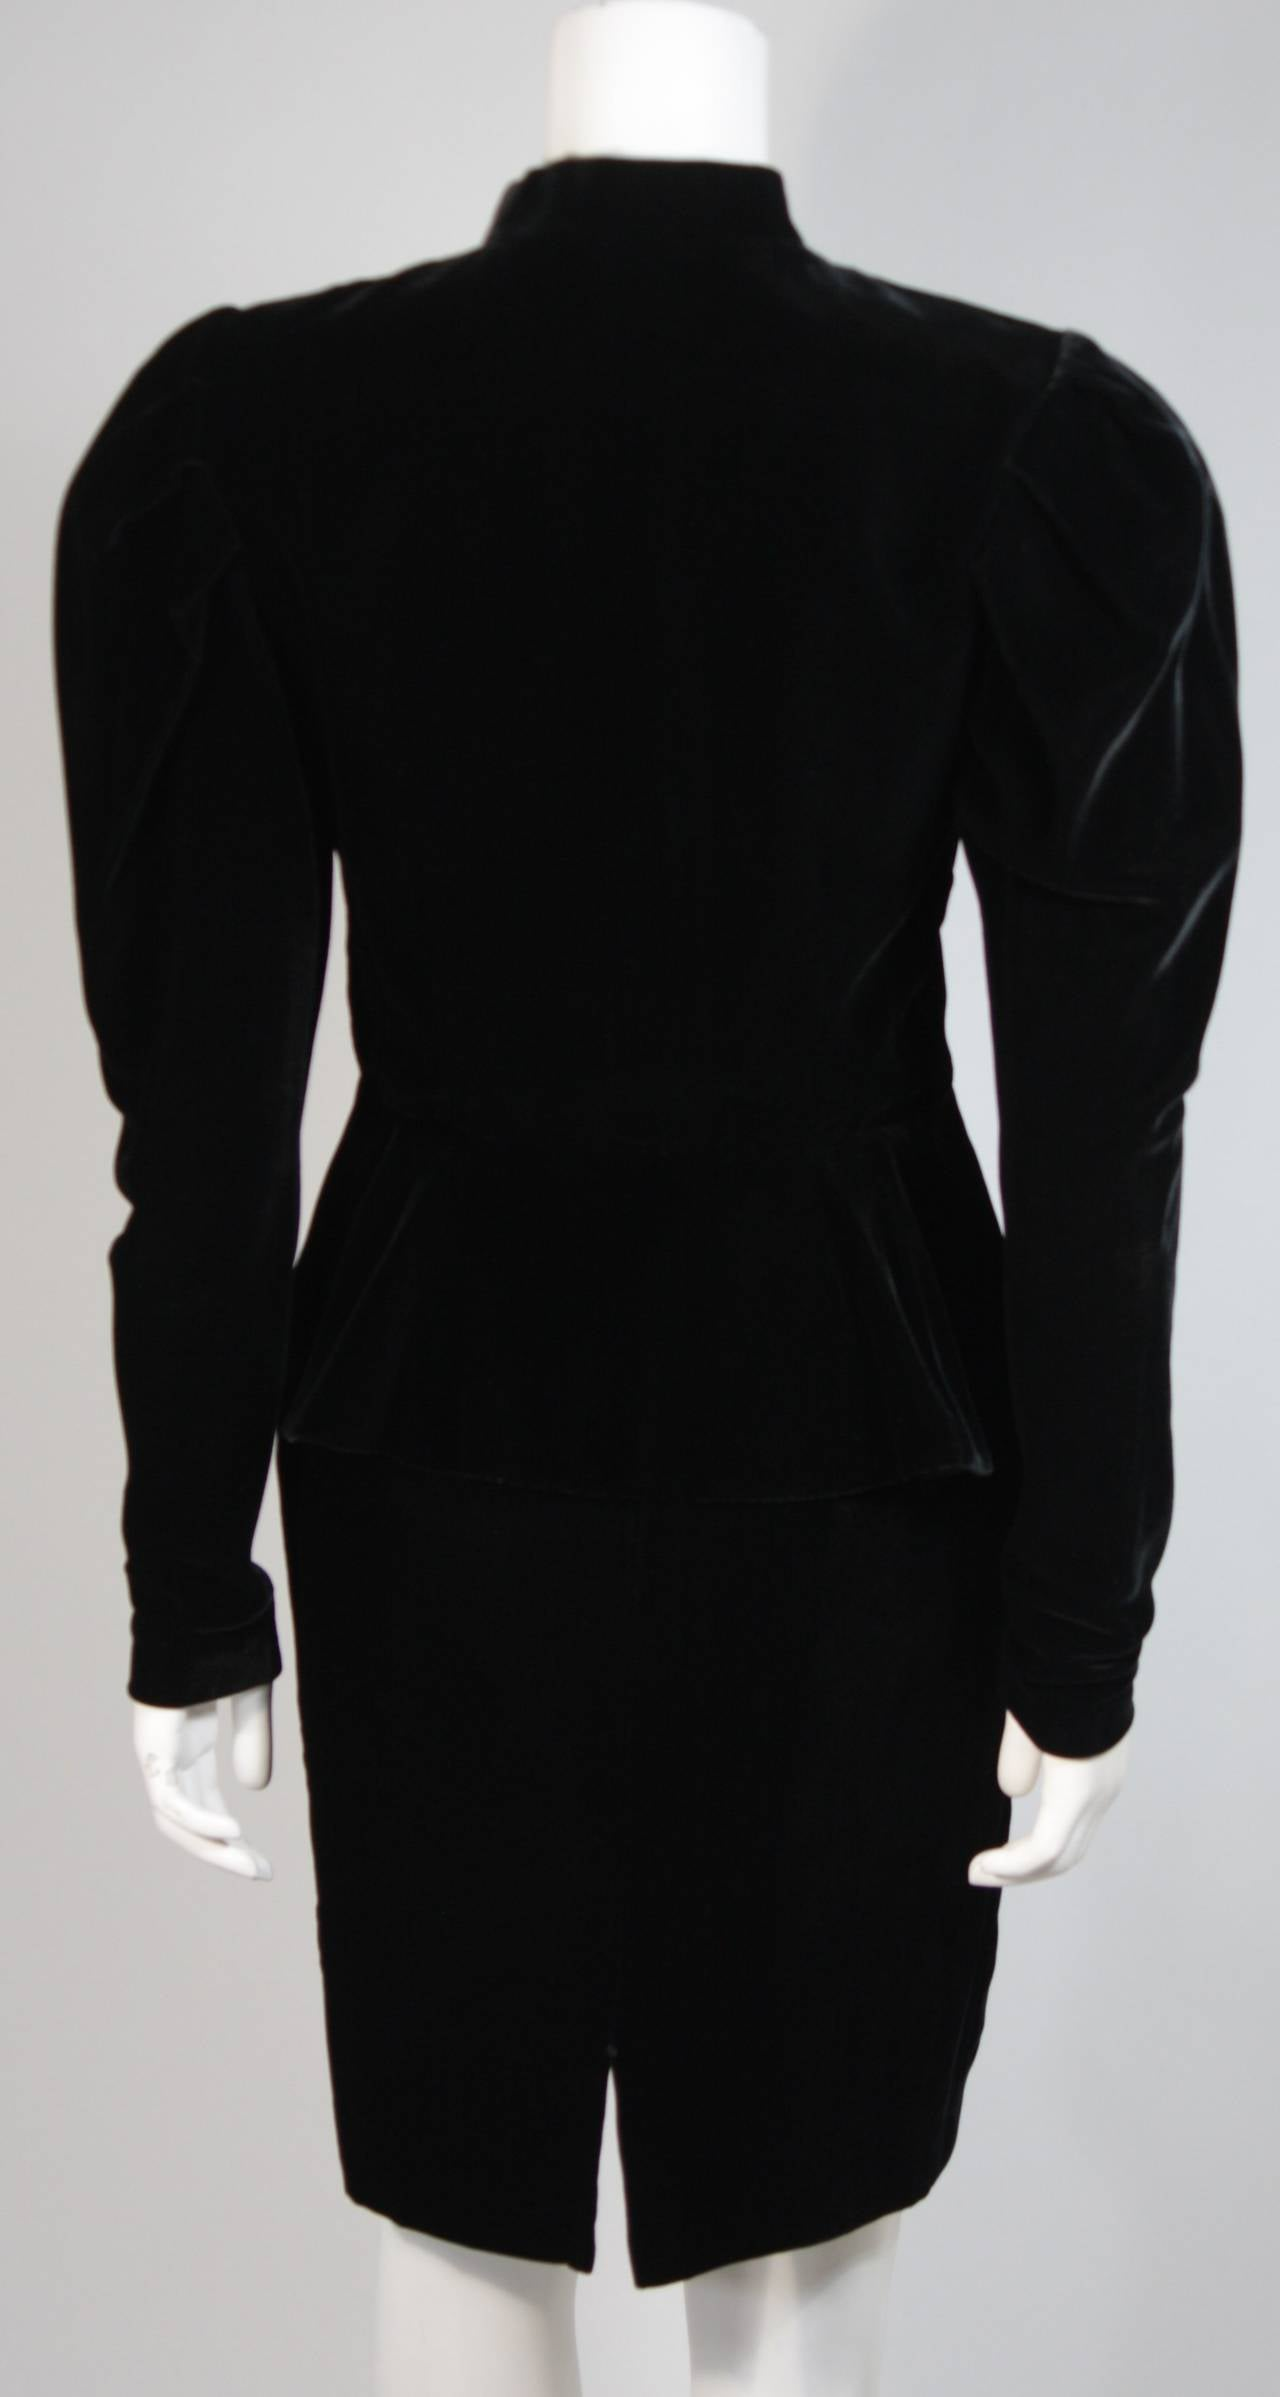 Vicky Tiel Black Velvet Skirt Suit with Rhinestone Buttons Size Small For Sale 2